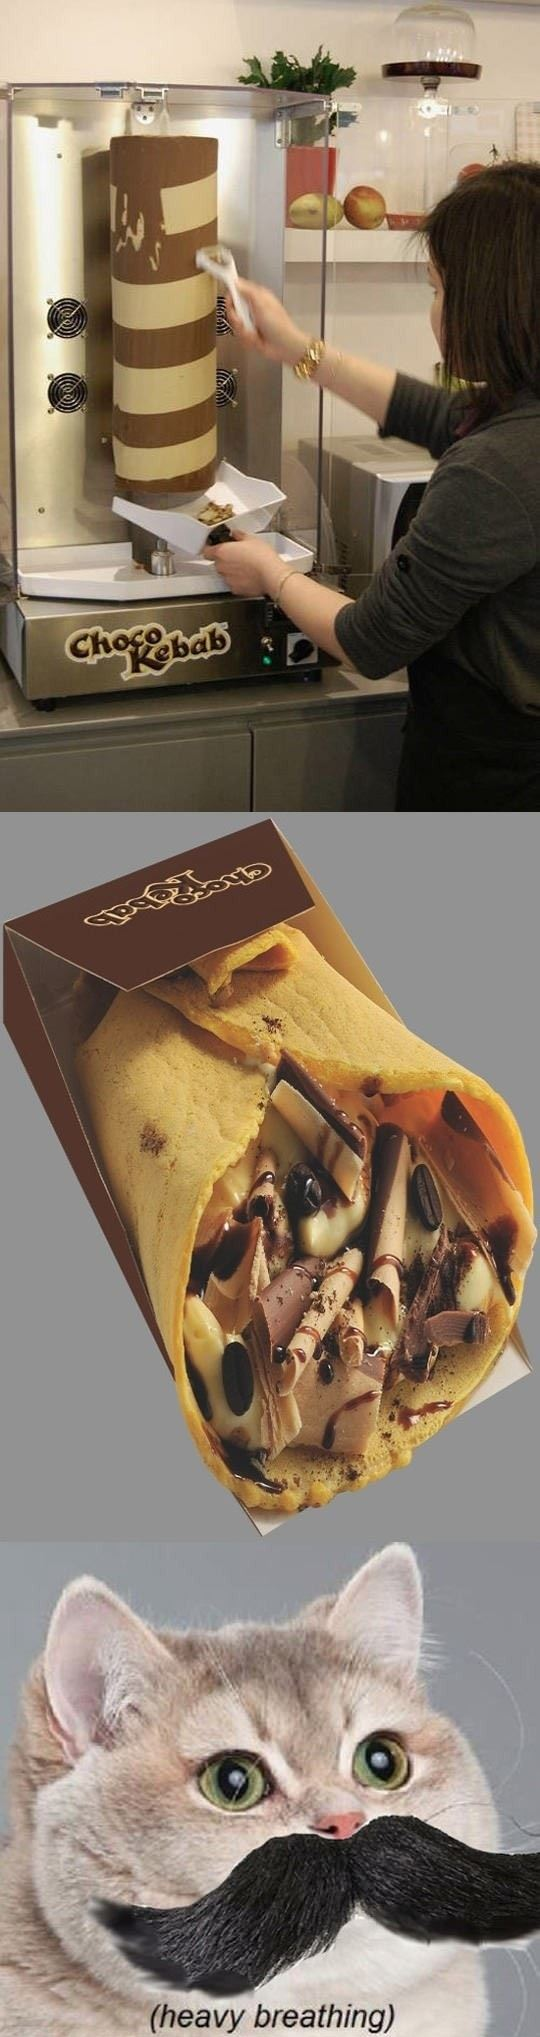 Chocolate Kebab